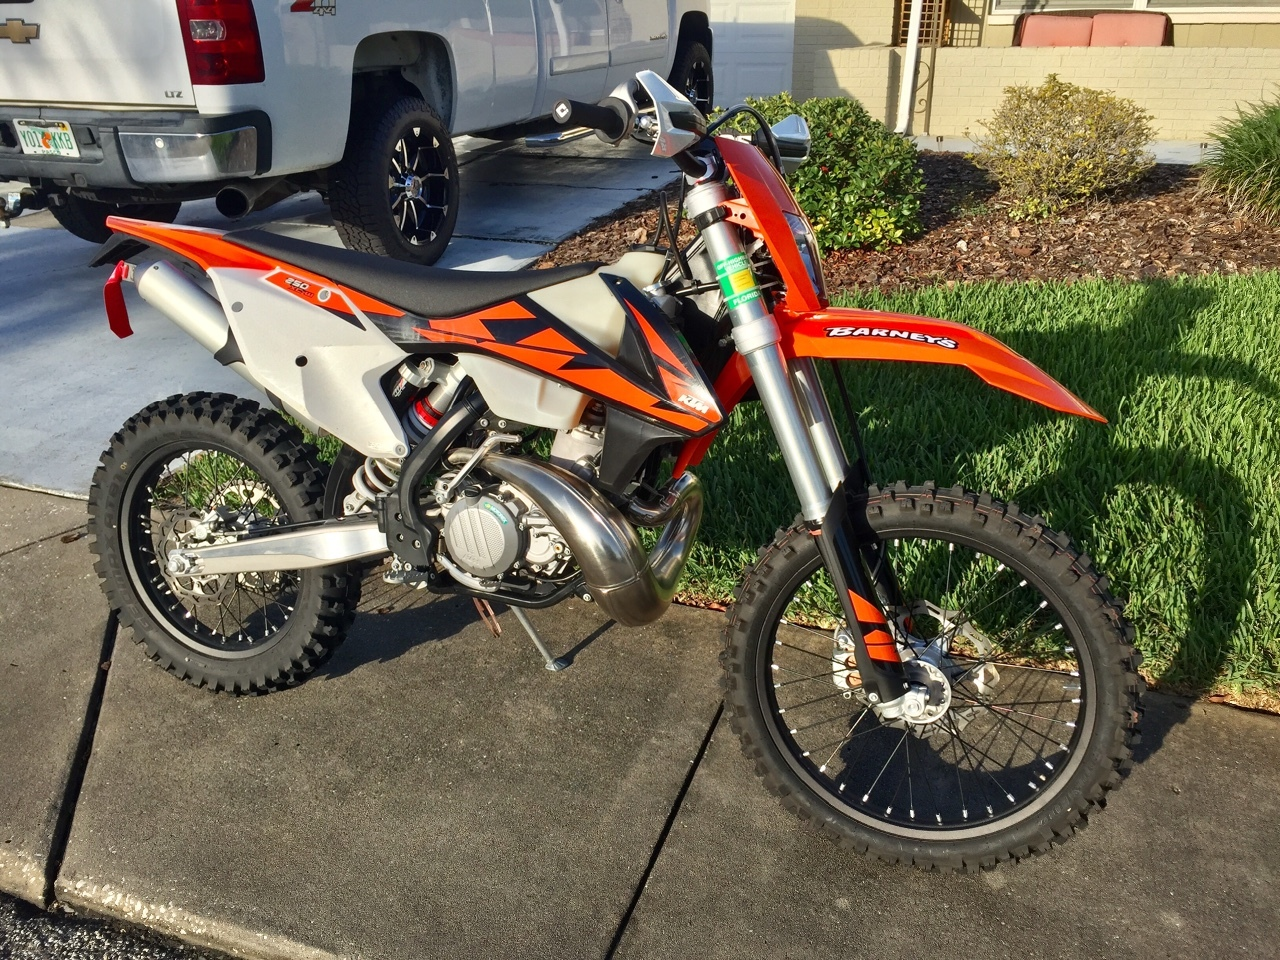 Used 250 Xc-W For Sale - Ktm British & European Motorcycles - Cycle